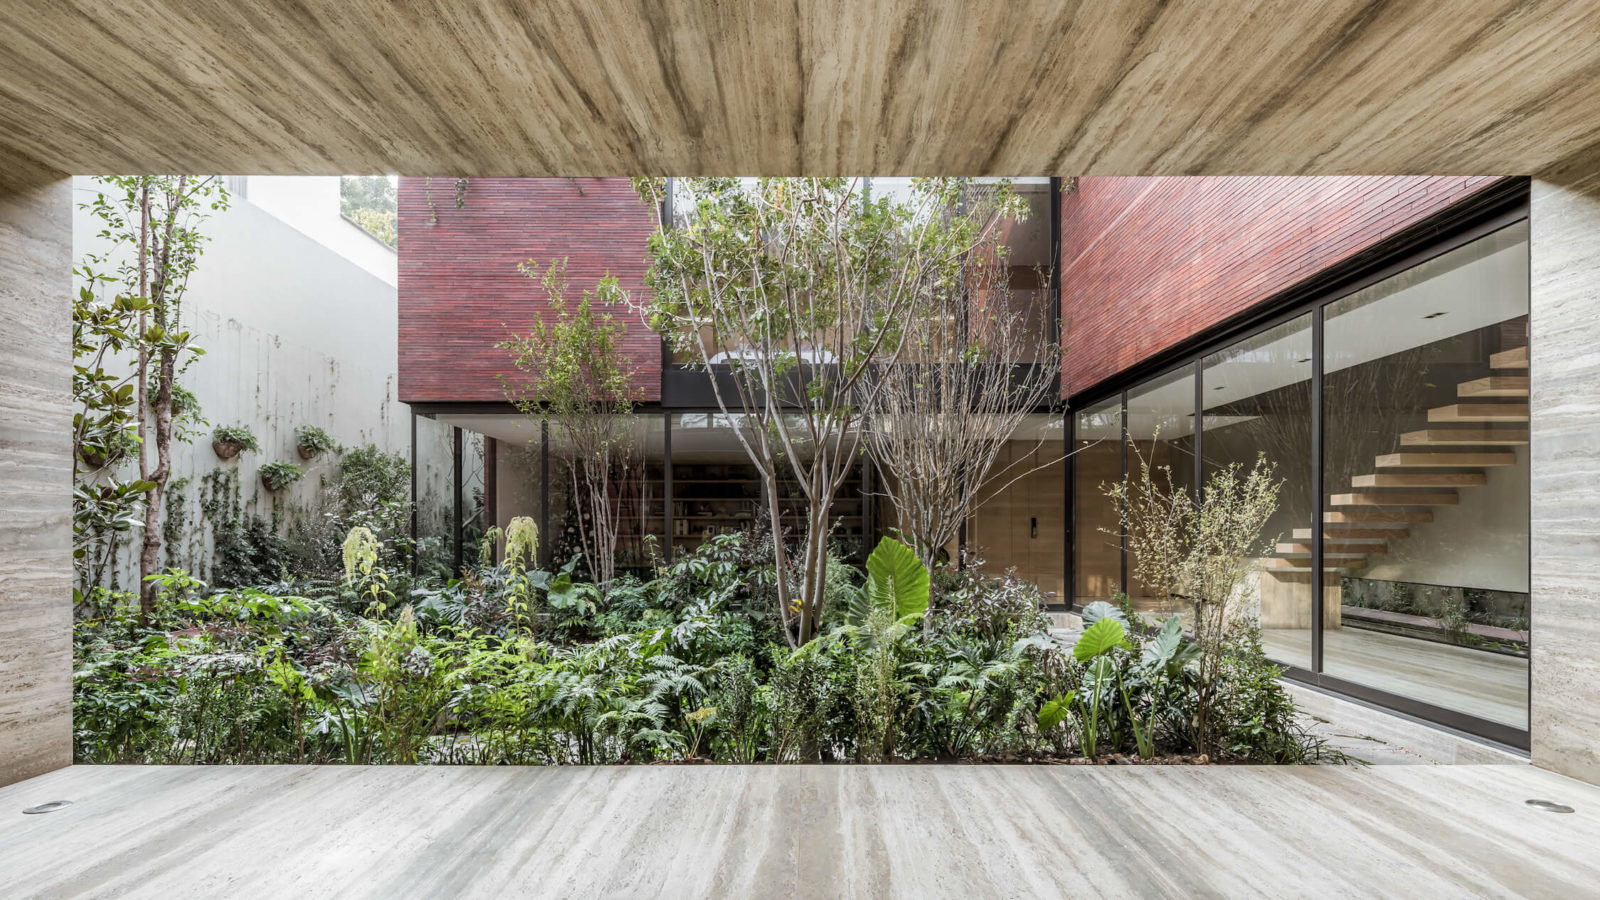 Looking into the courtyard, designed by Esrawe Studio